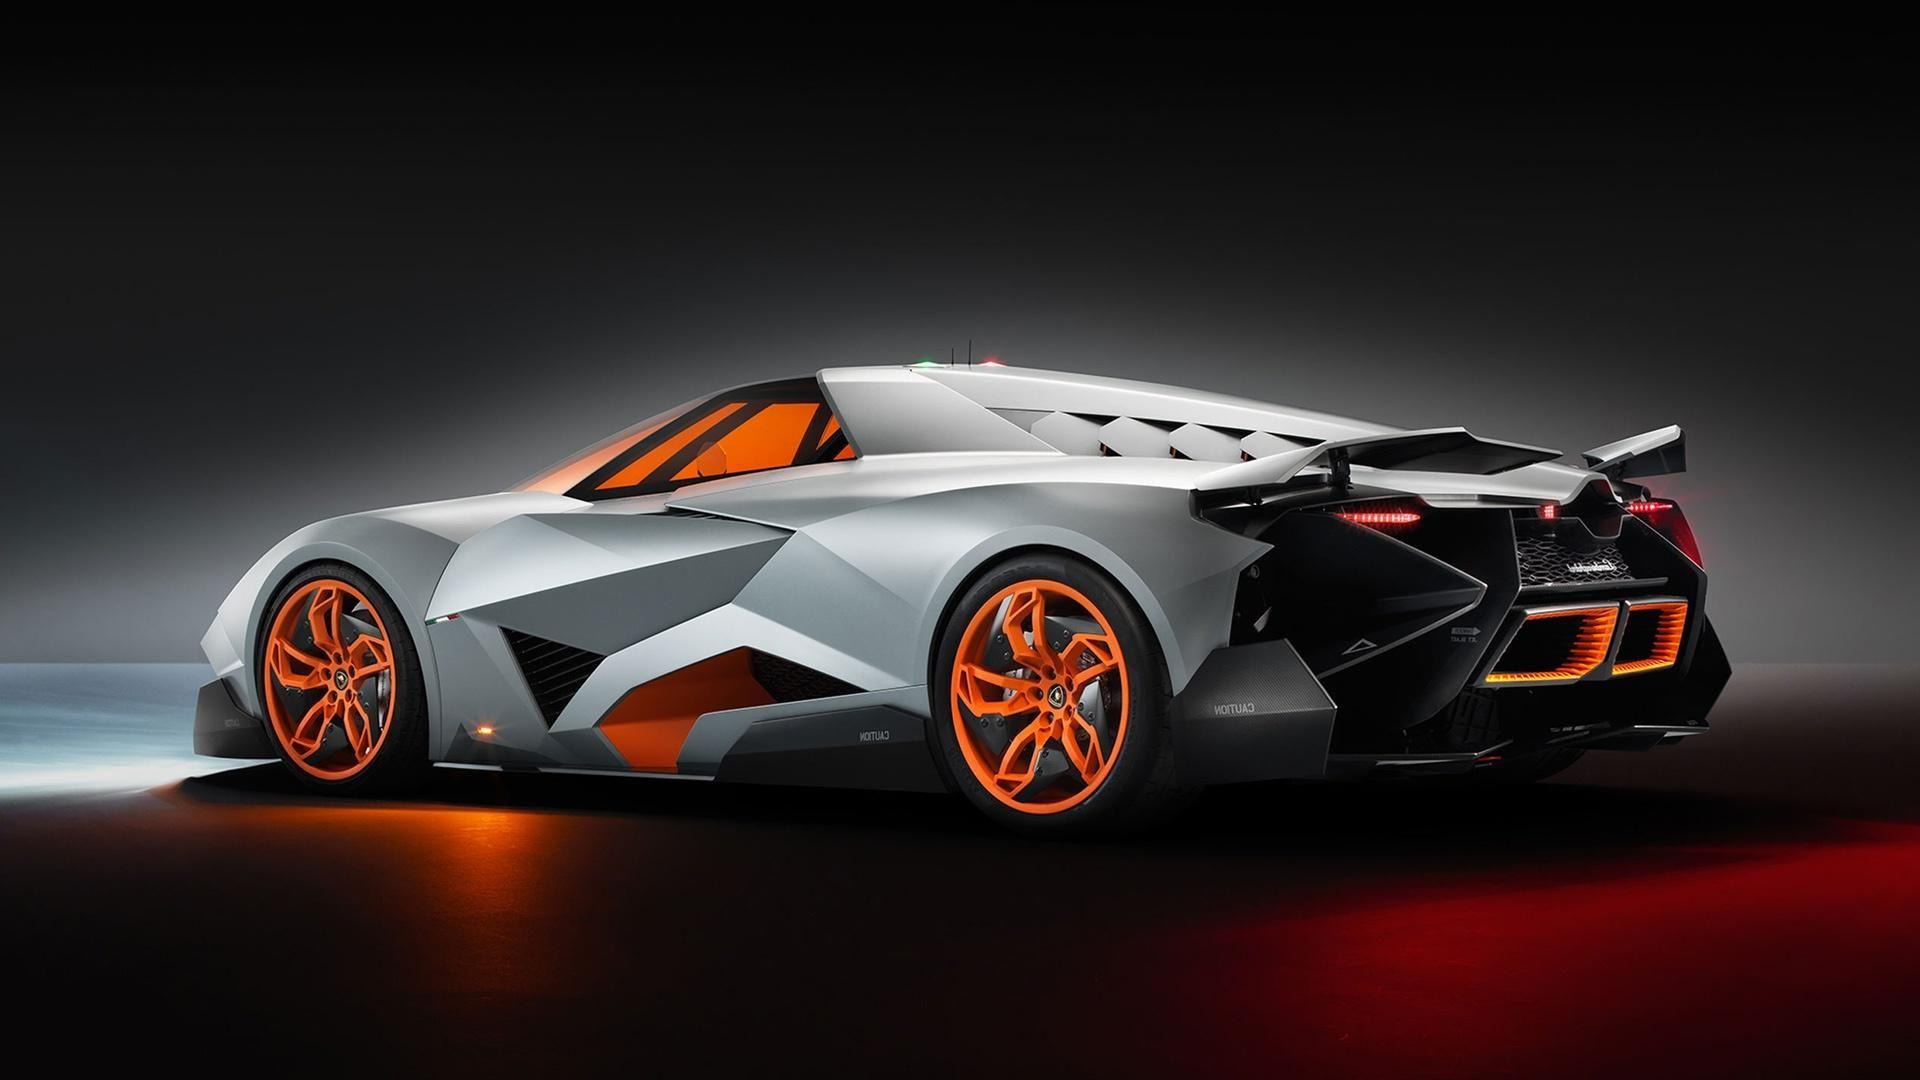 Lamborghini Egoista Wallpapers Wallpaper Cave